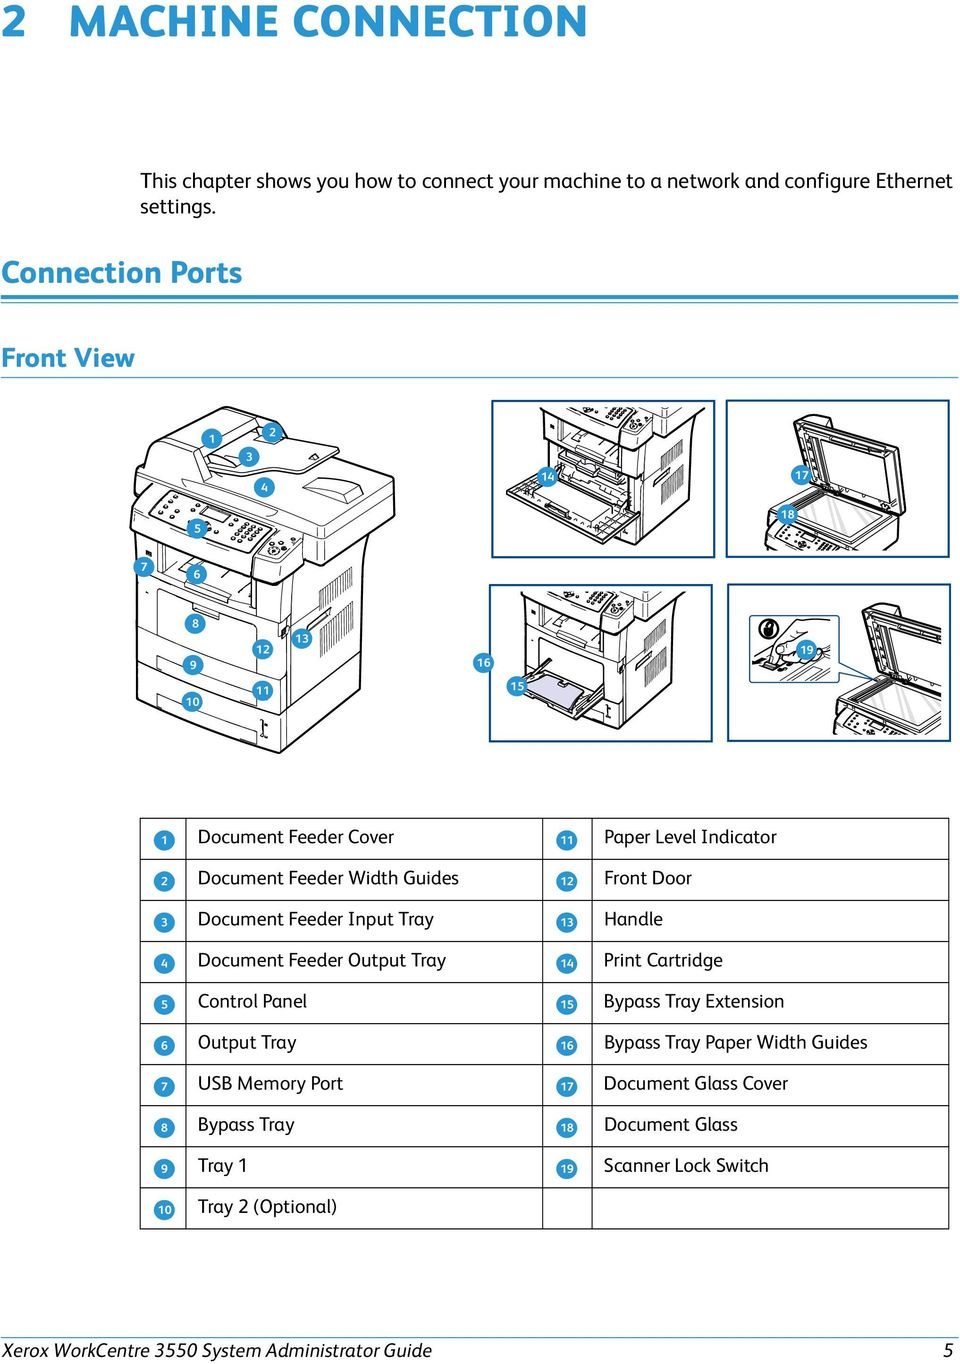 xerox workcentre 5865 user manual